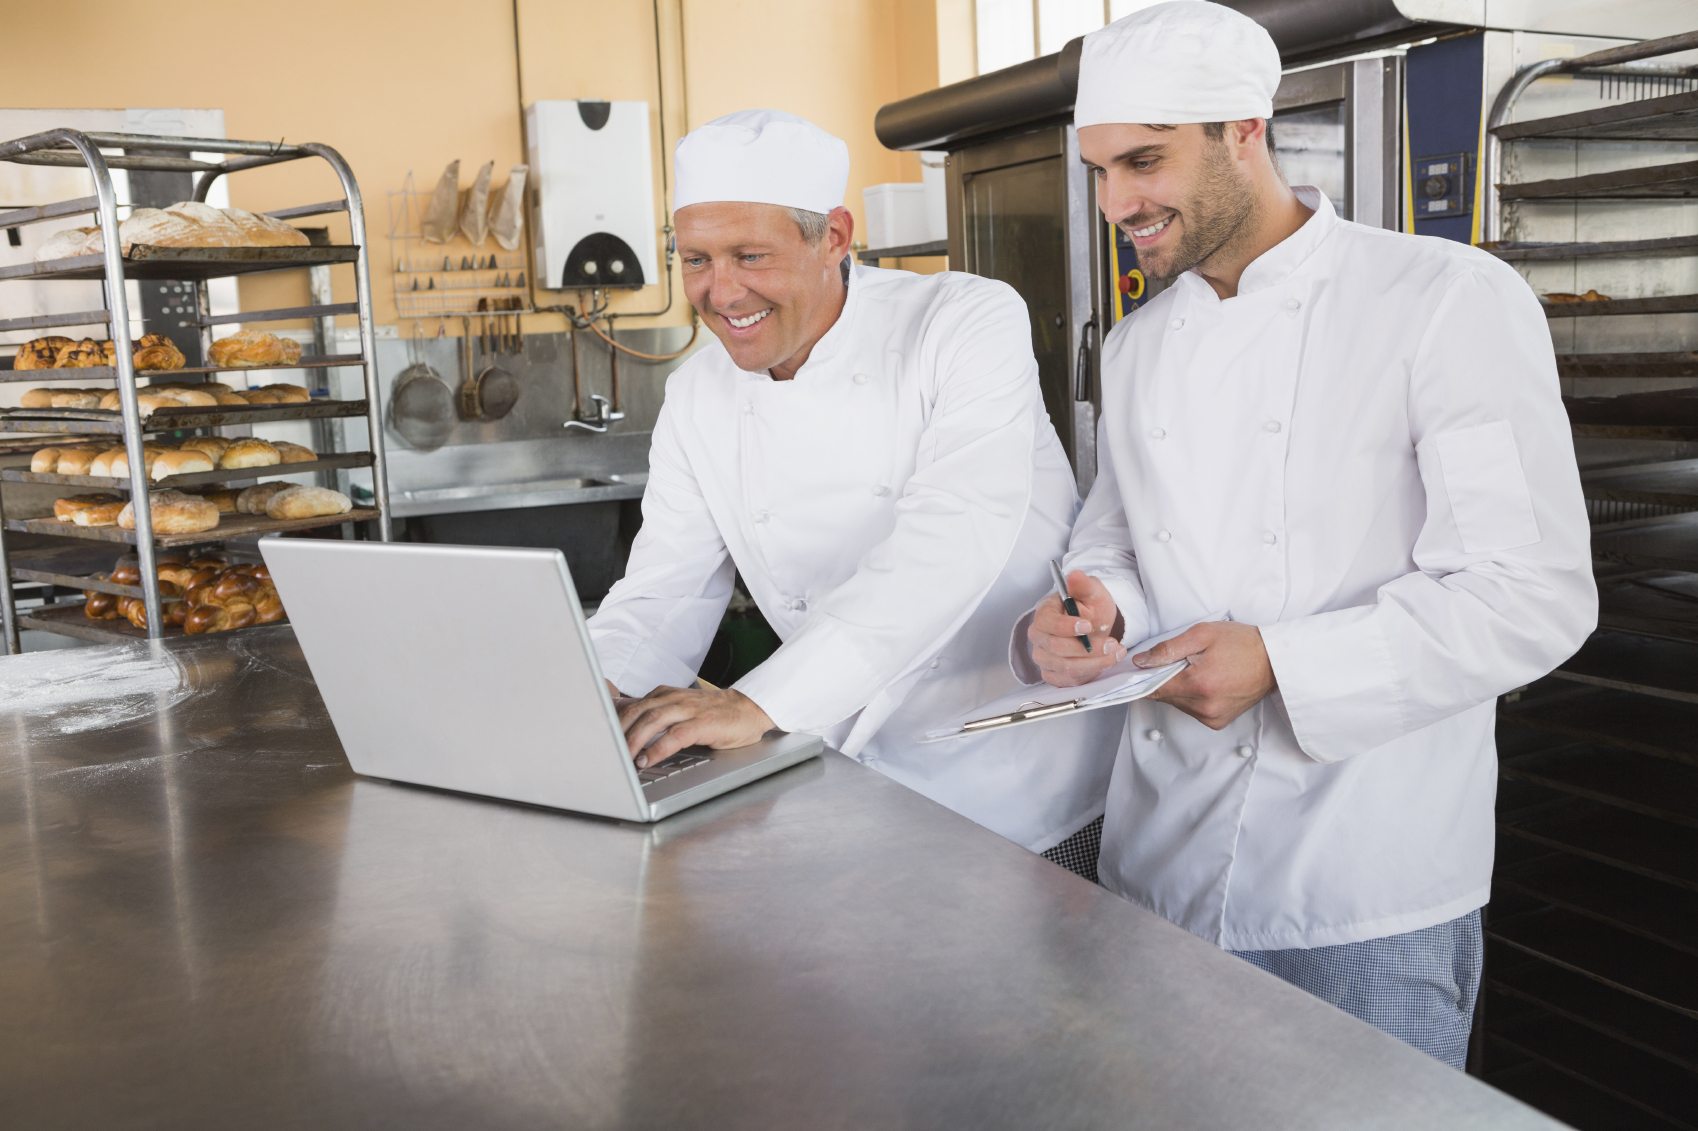 Smiling bakers working together on laptop_Medium